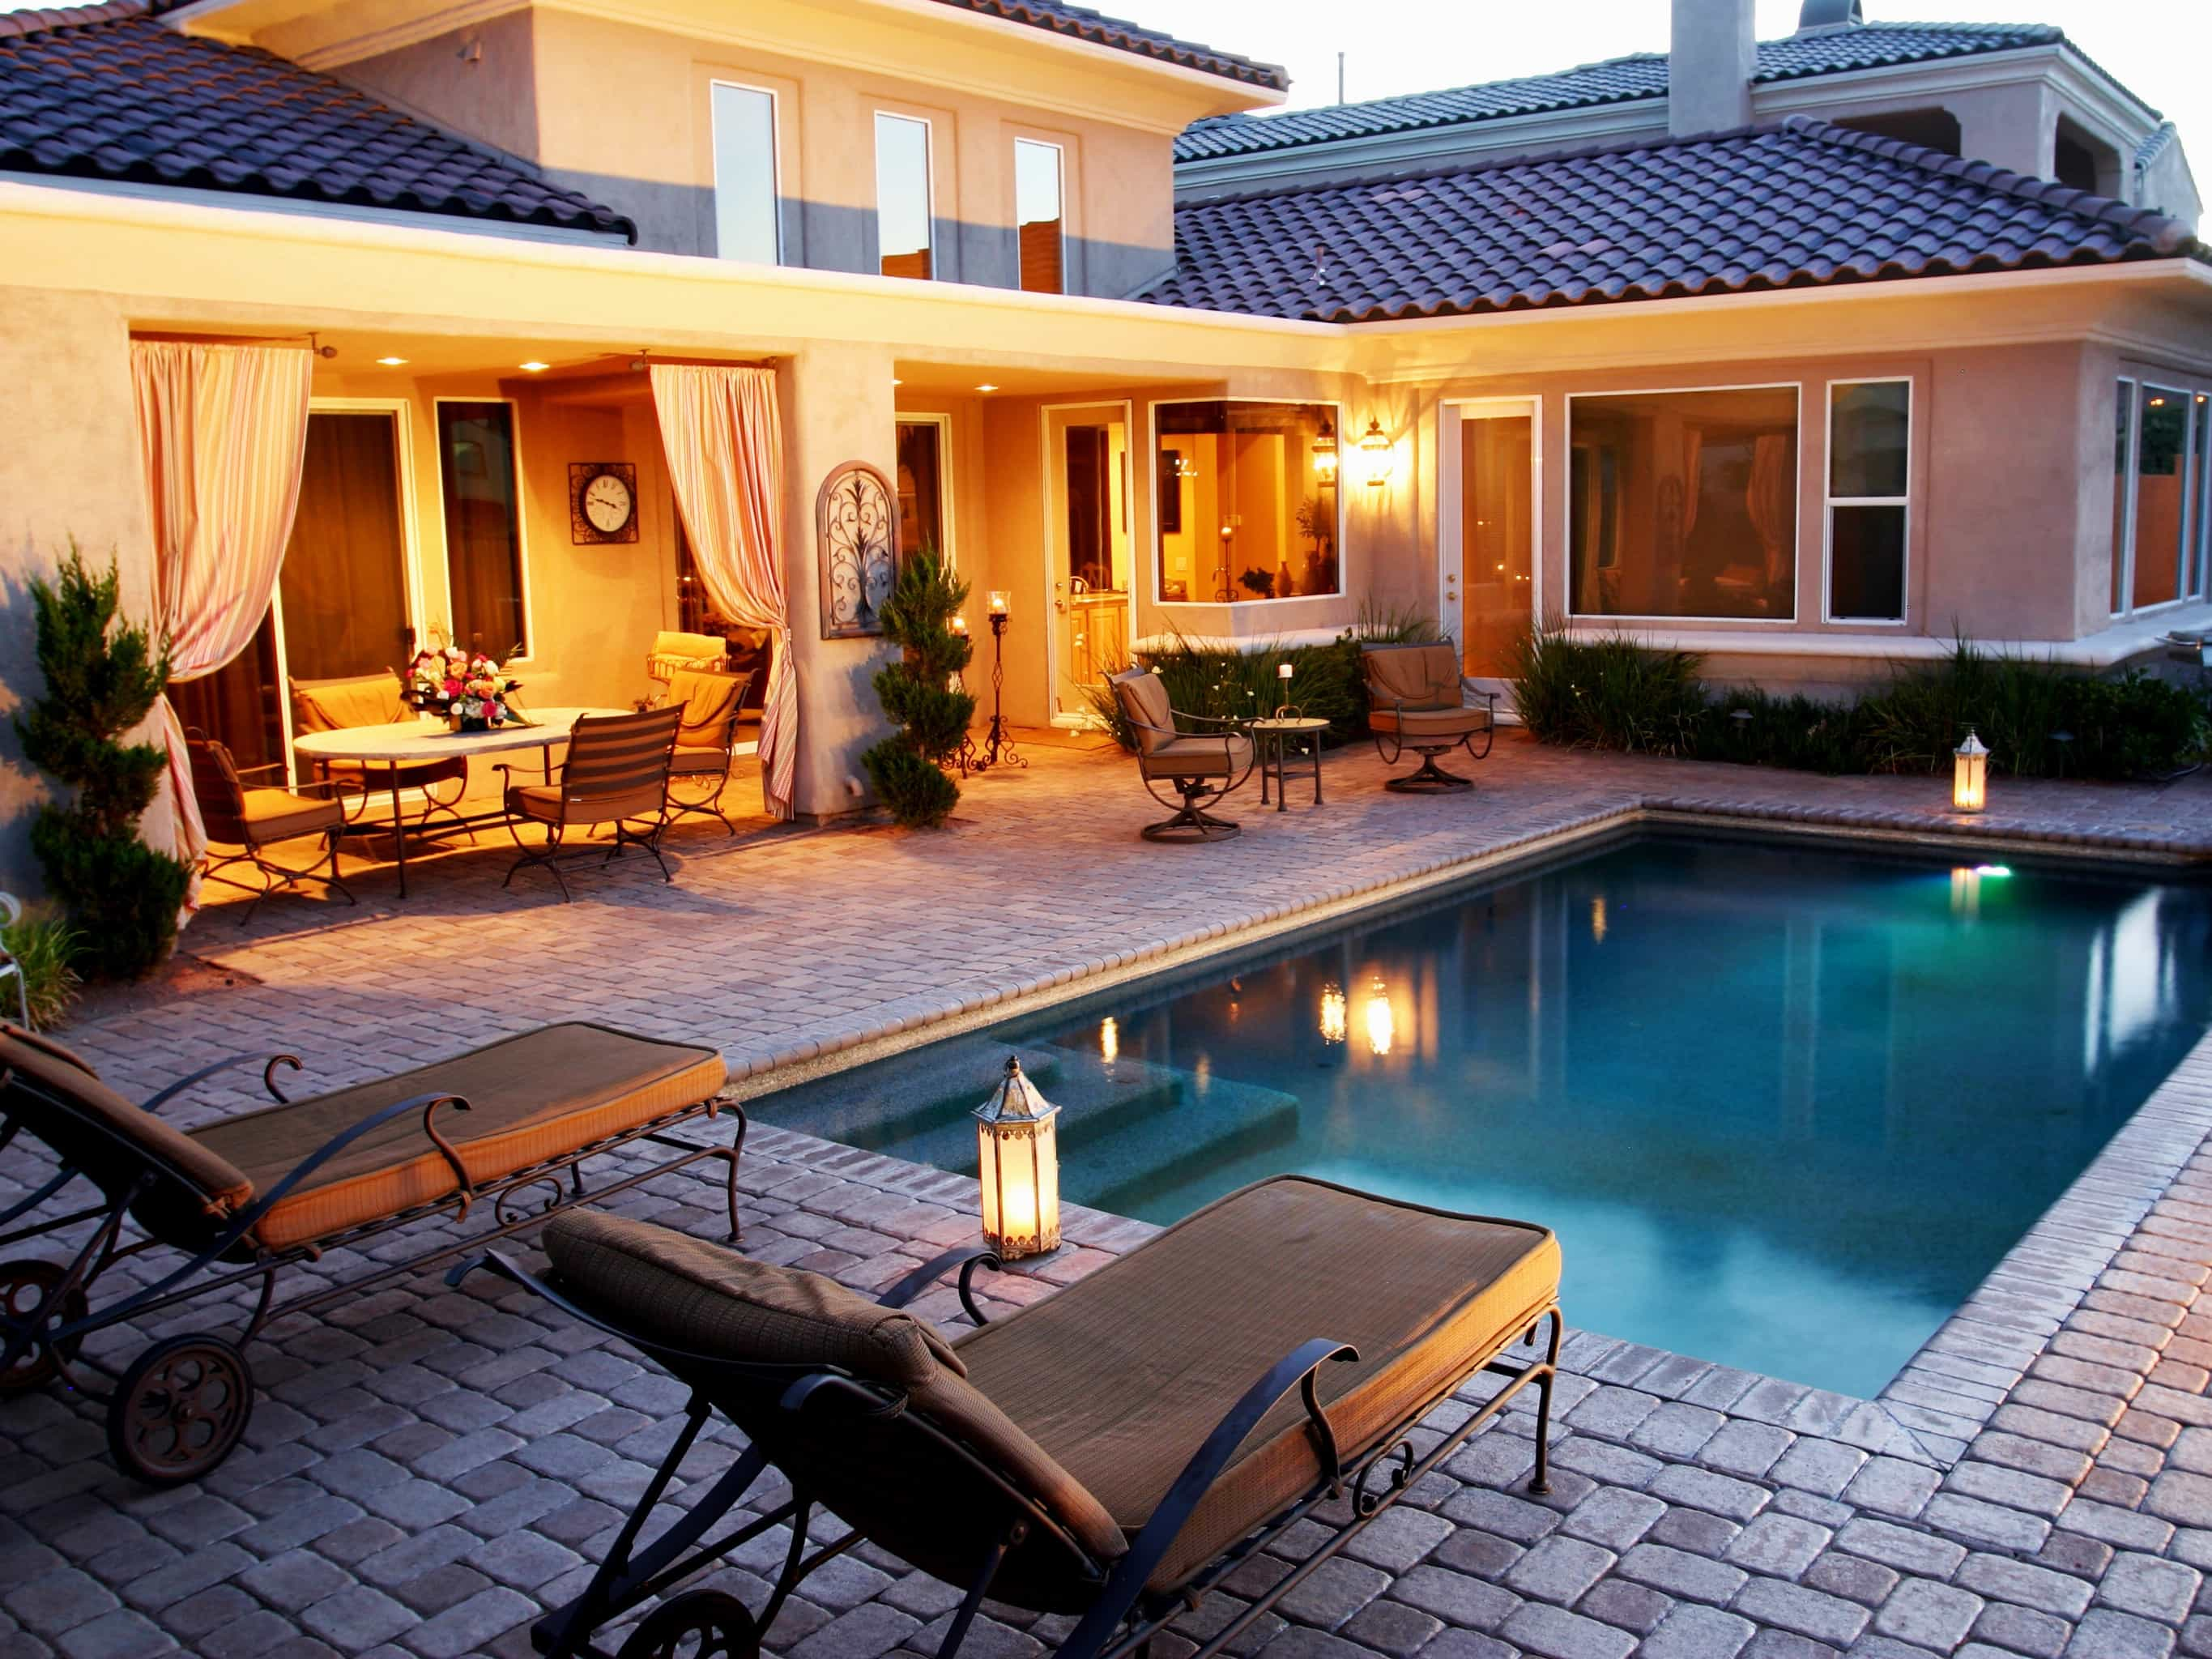 Swimming Pool Designs And Plans 23479 Garden Ideas